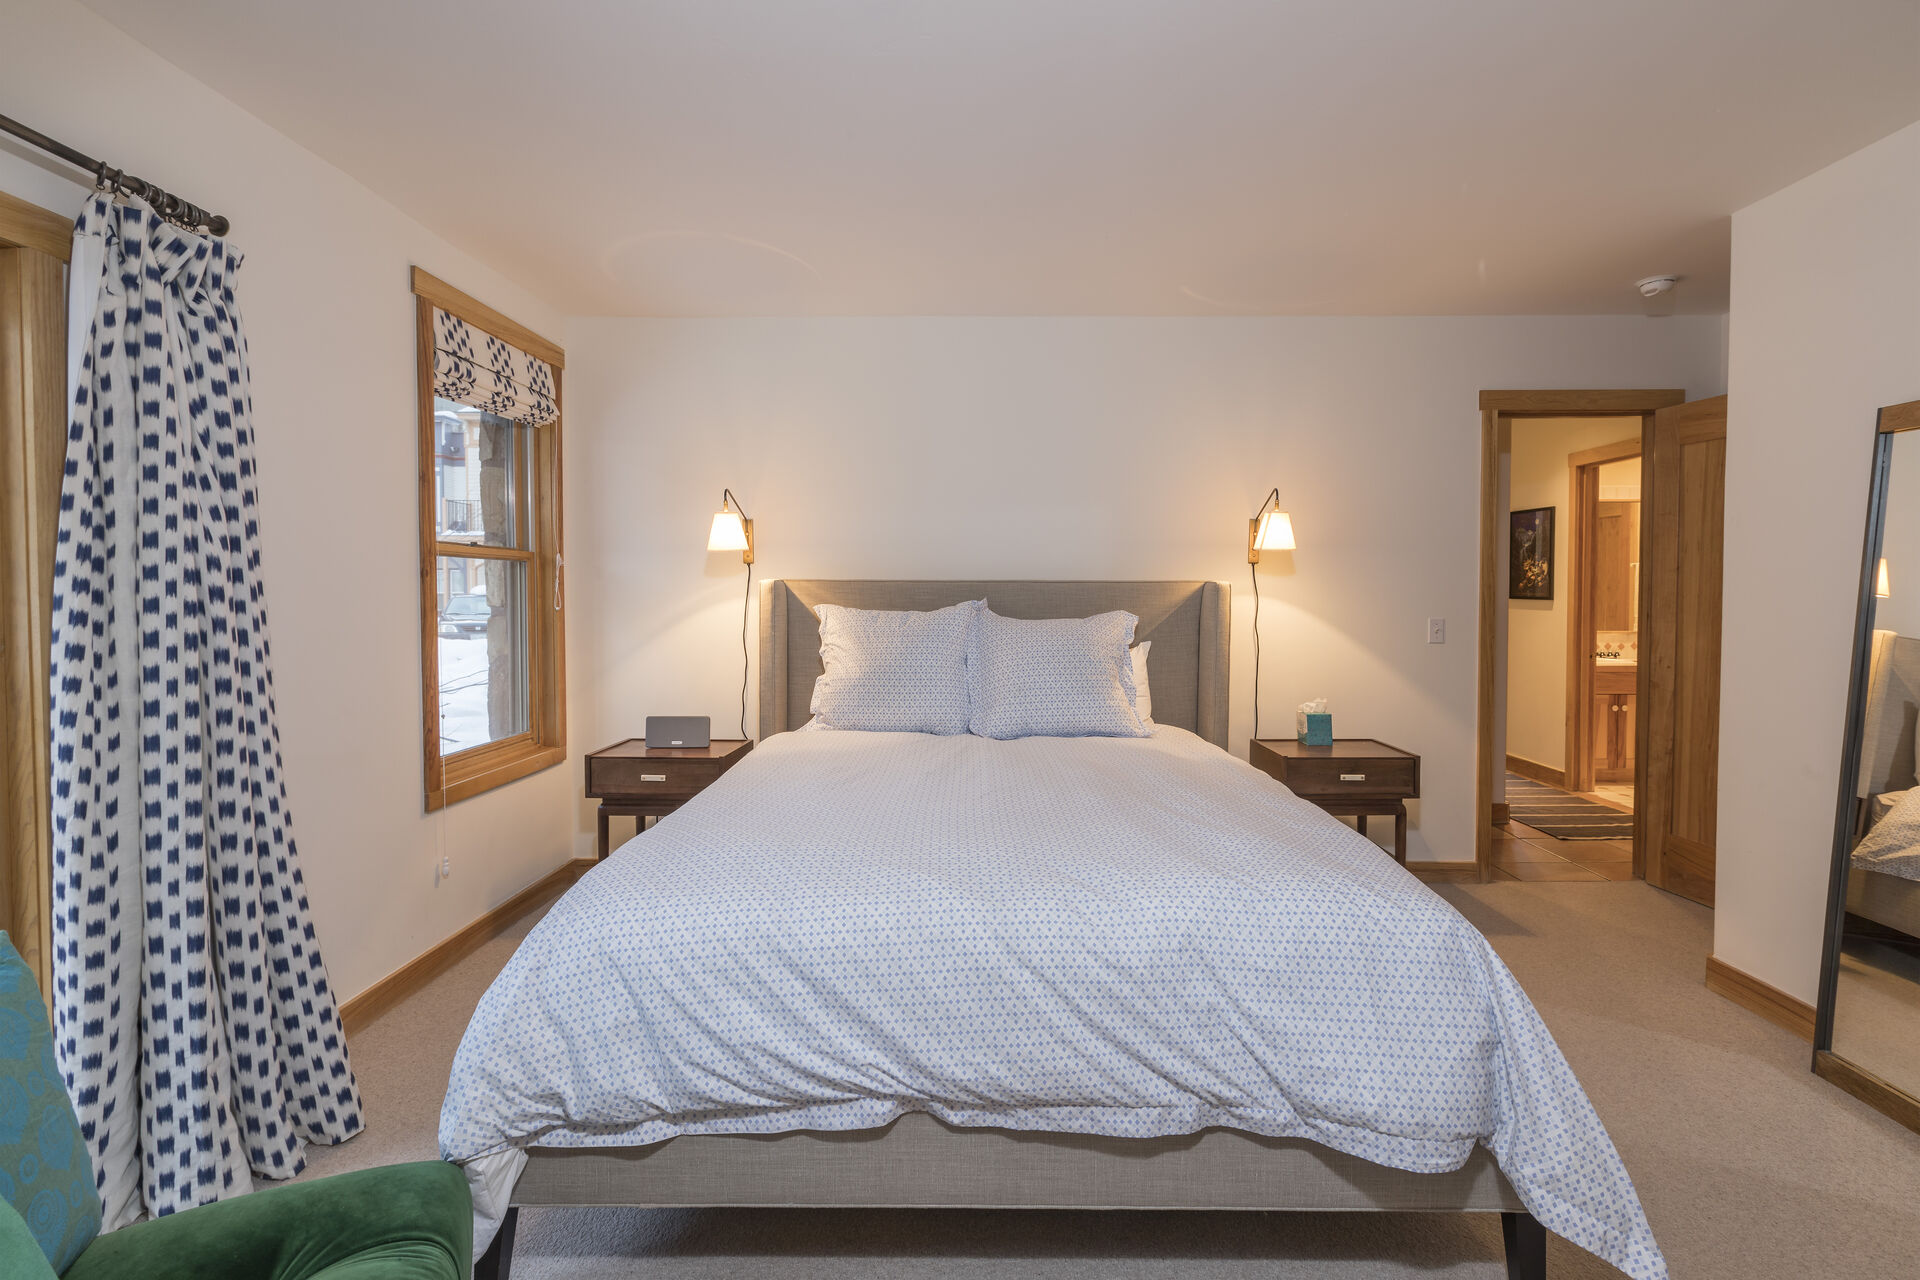 Large bed sits in the middle of a bedroom flanked on either side by nightstands.